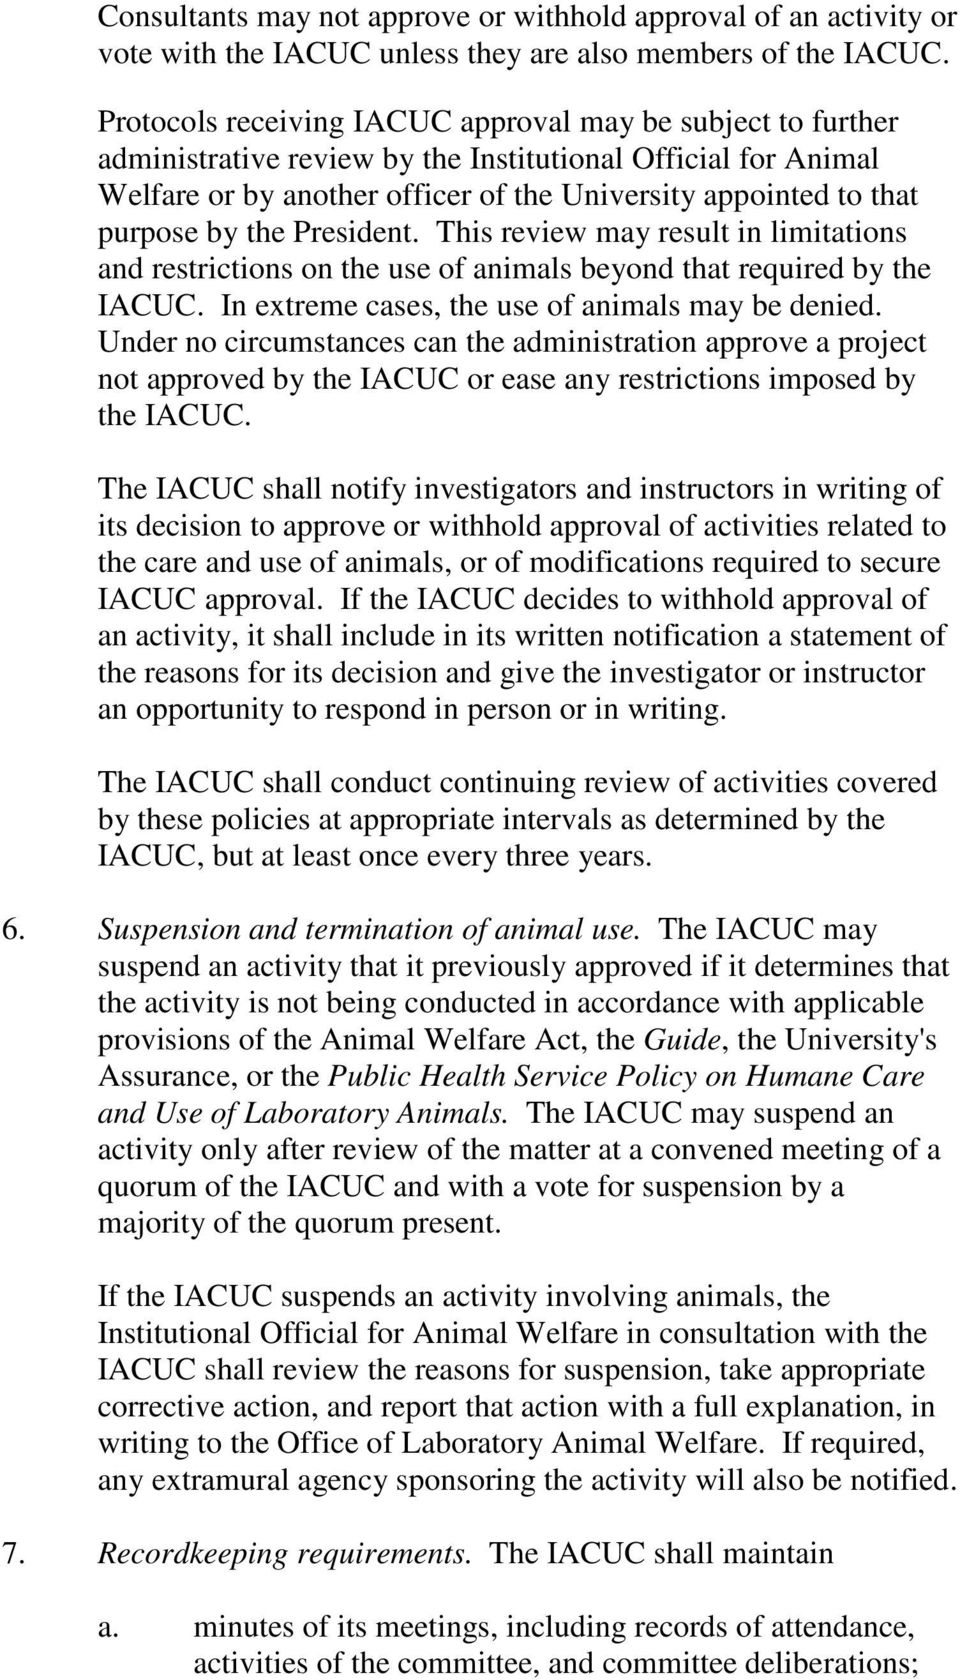 by the President. This review may result in limitations and restrictions on the use of animals beyond that required by the IACUC. In extreme cases, the use of animals may be denied.